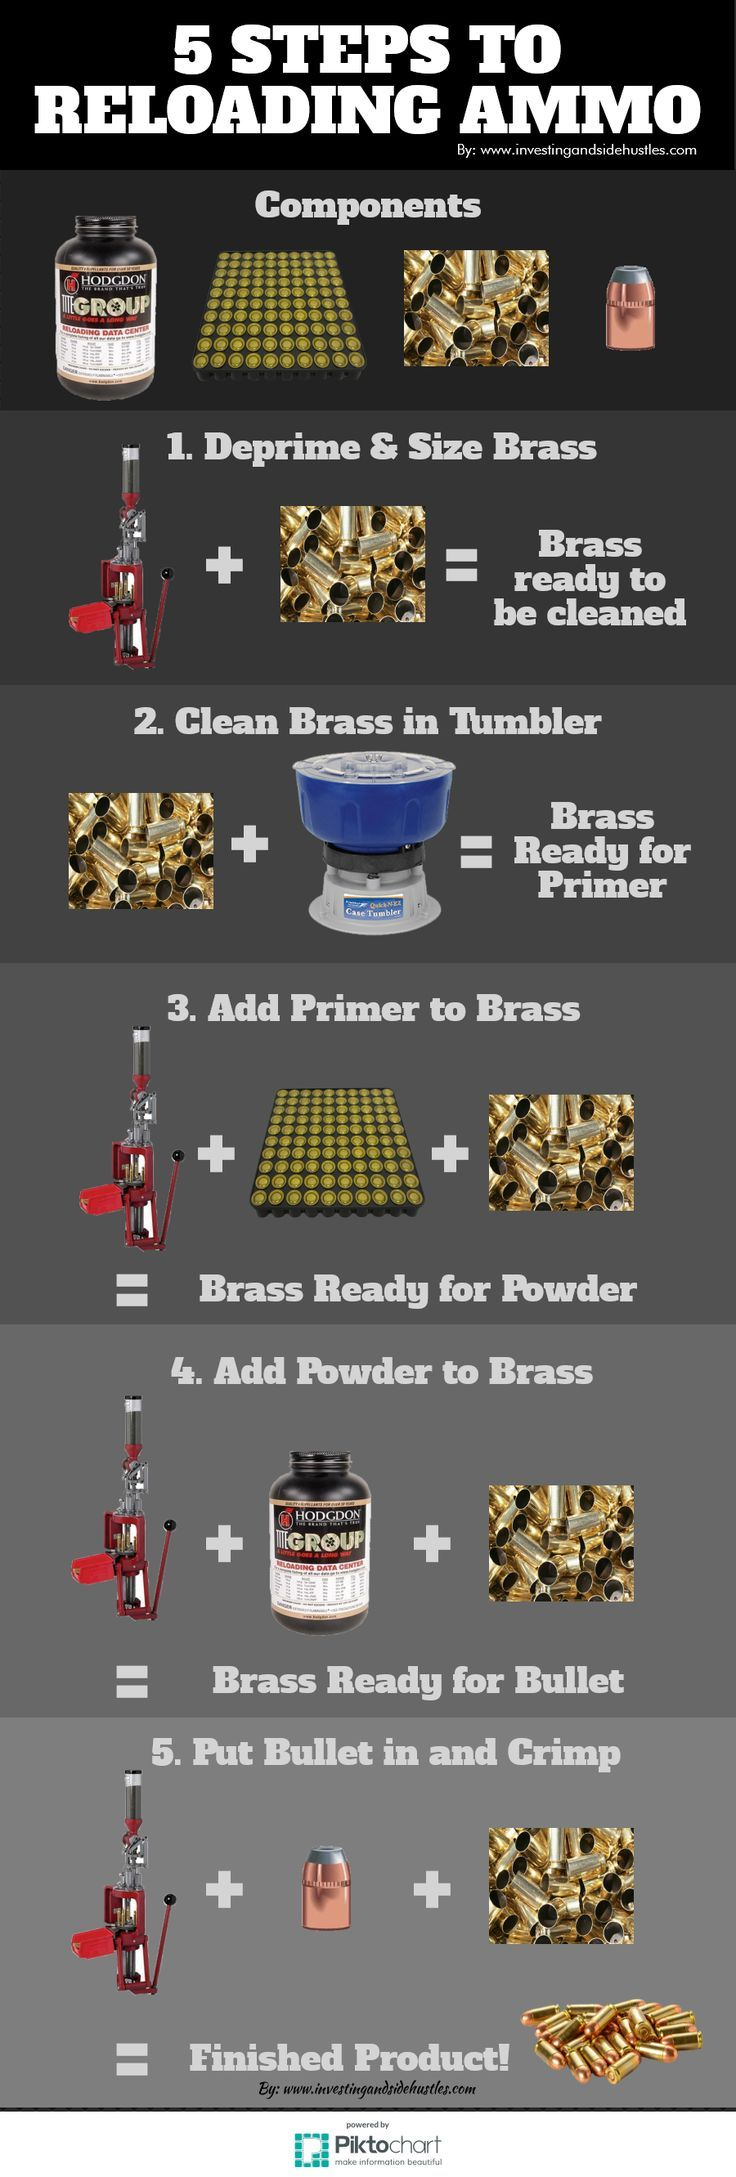 5 Steps To Reloading Ammo Is An Infograph It Shows You The Steps Of Reloading Ammunition Bullets Powder Prime Reloading Ammo Reloading Room Reloading Bench